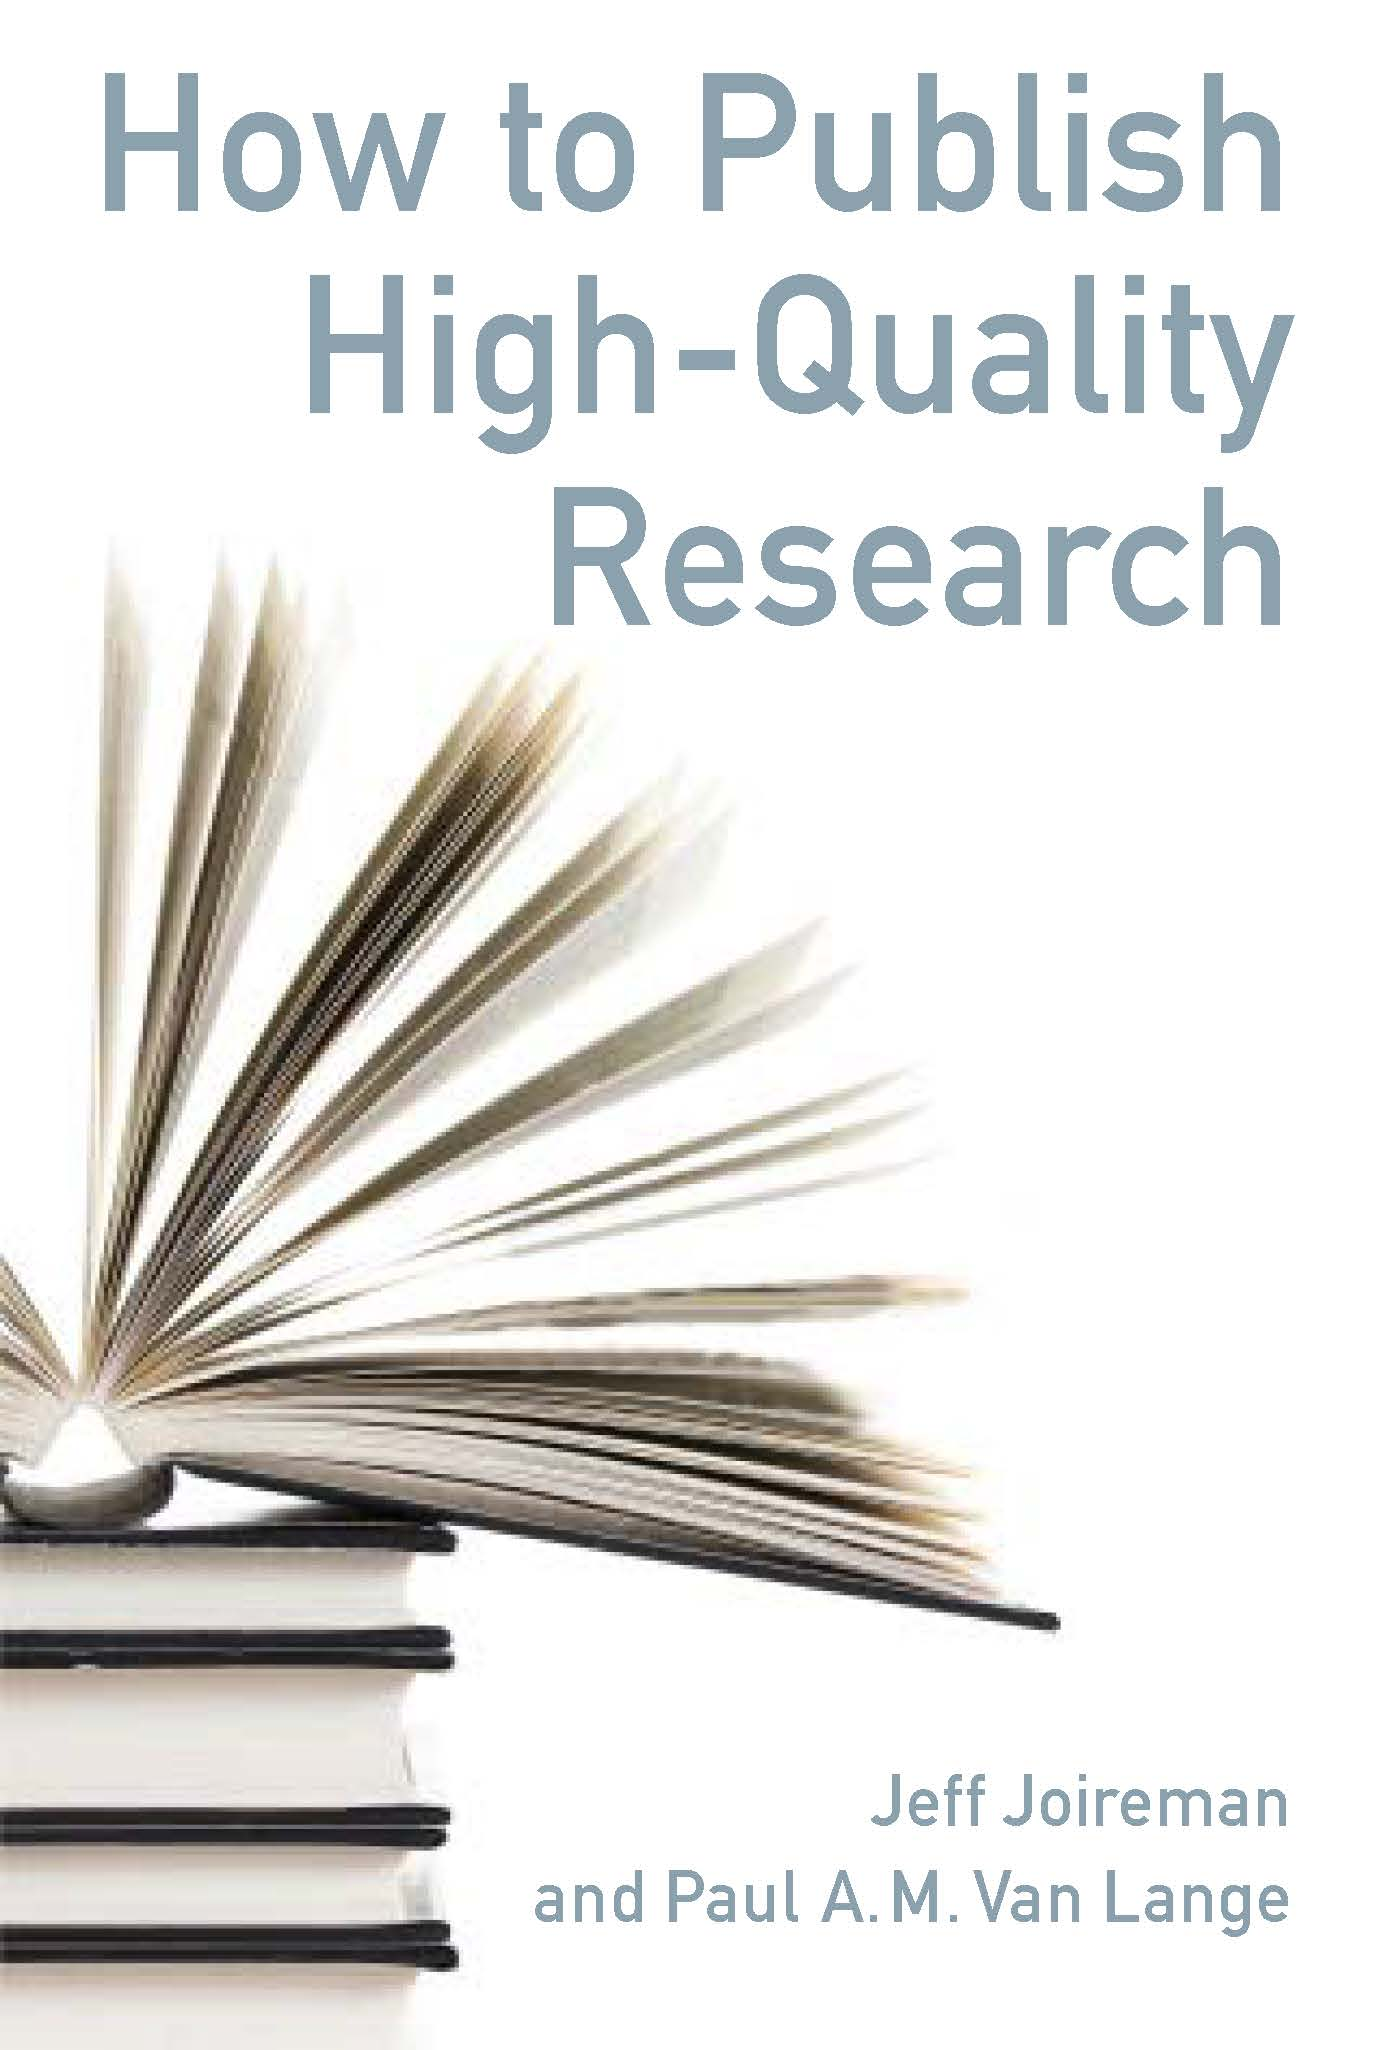 Joireman, J. A., & Van Lange, P. A. M.   (2015).  How to Publish High Quality Research: Discovering, Building, and Sharing.  American Psychological Association. Washington DC.